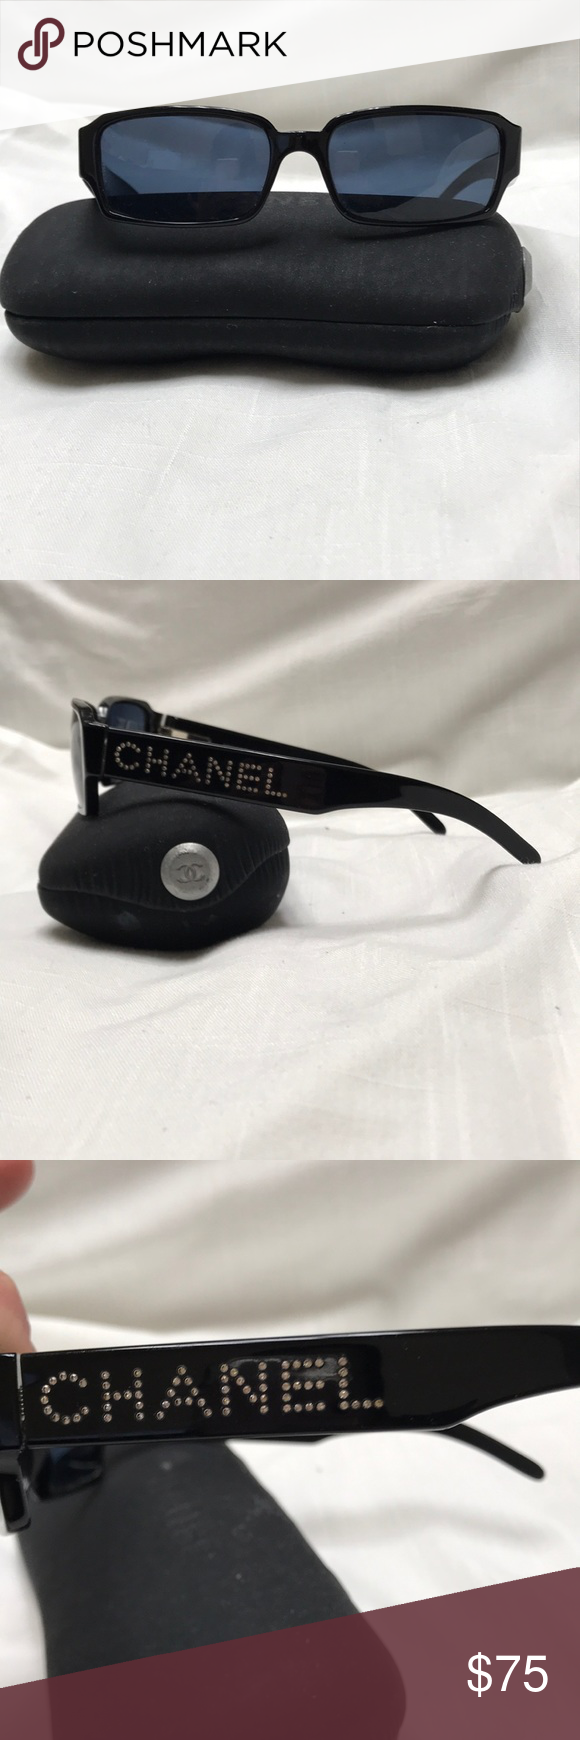 Chanel Sunglasses | Chanel sunglasses, Chanel logo and Chanel black